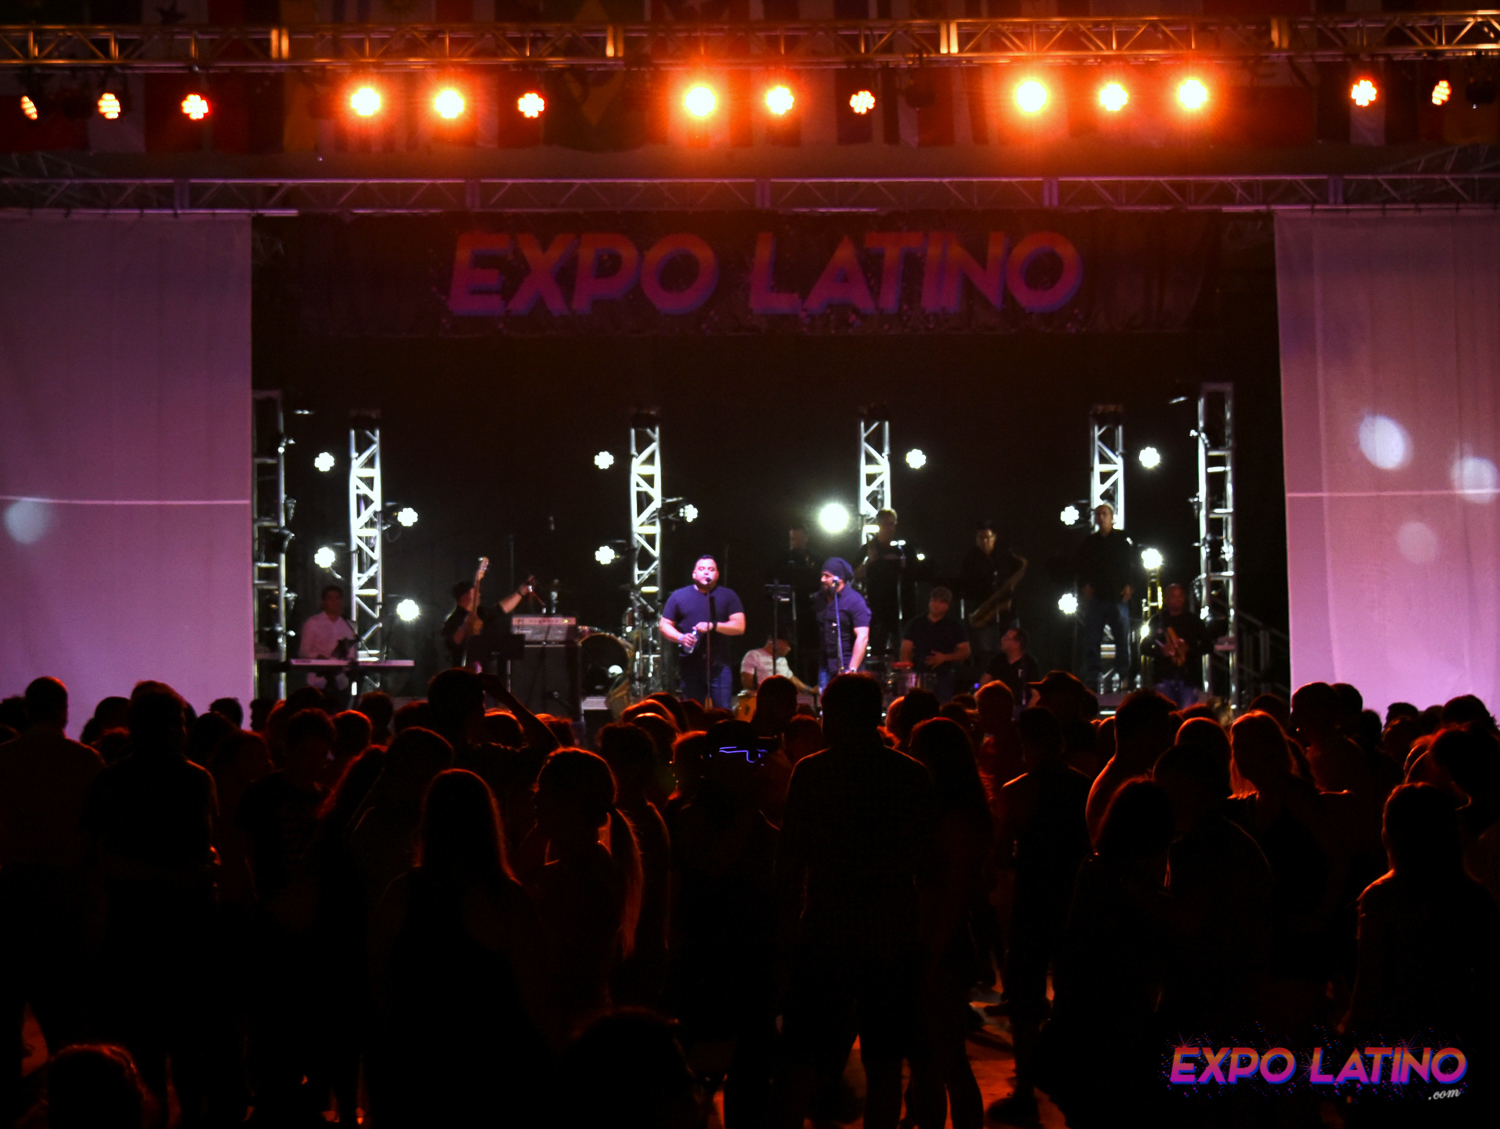 Doug-Wong-Photography-Expo-Latino-2018-26